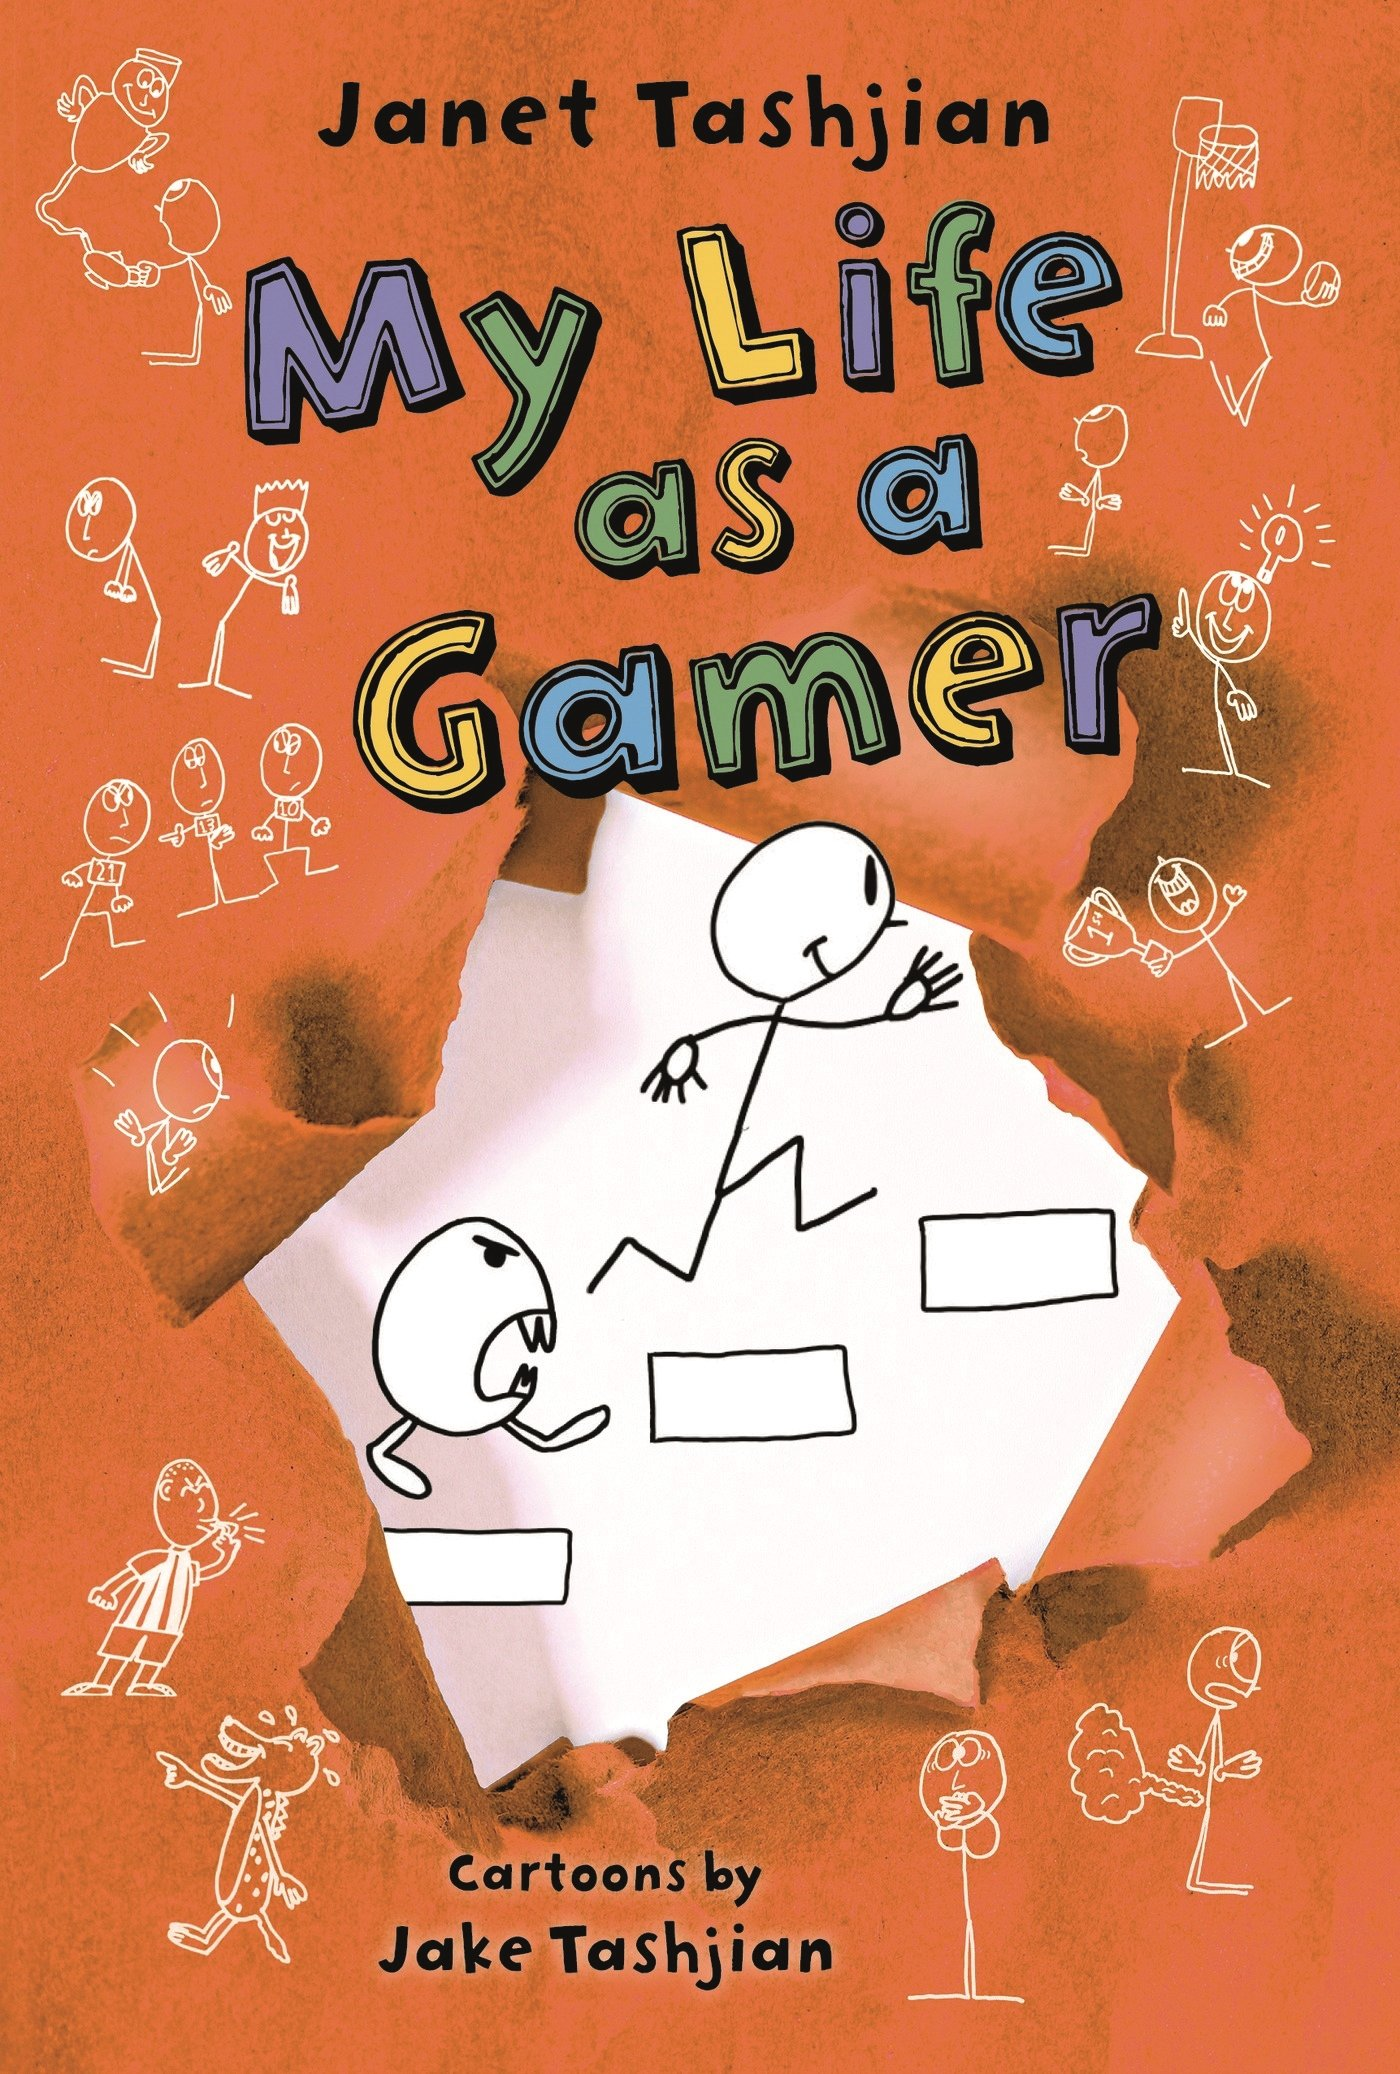 My life as a gamer the my life series janet tashjian jake my life as a gamer the my life series janet tashjian jake tashjian 9780805098518 amazon books fandeluxe Gallery